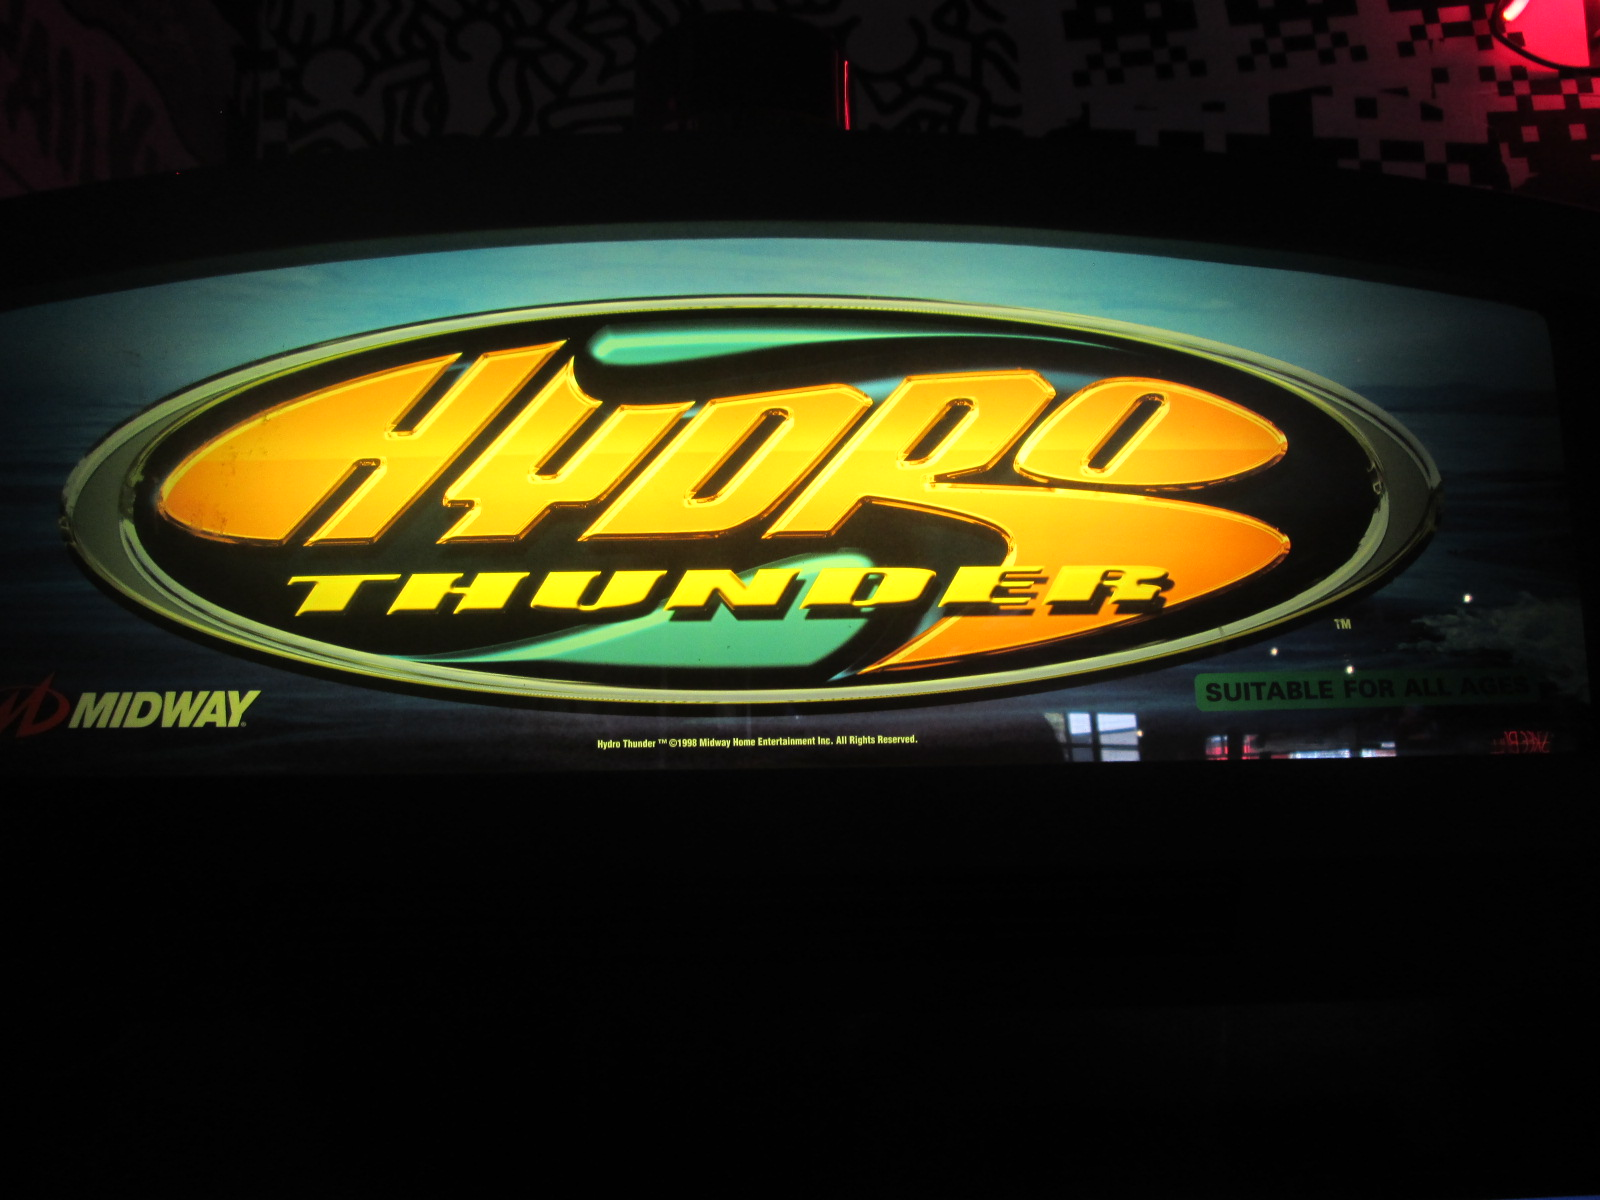 ed1475: Hydro Thunder: Artic Circle (Arcade) 0:02:25.3 points on 2016-09-18 15:38:47